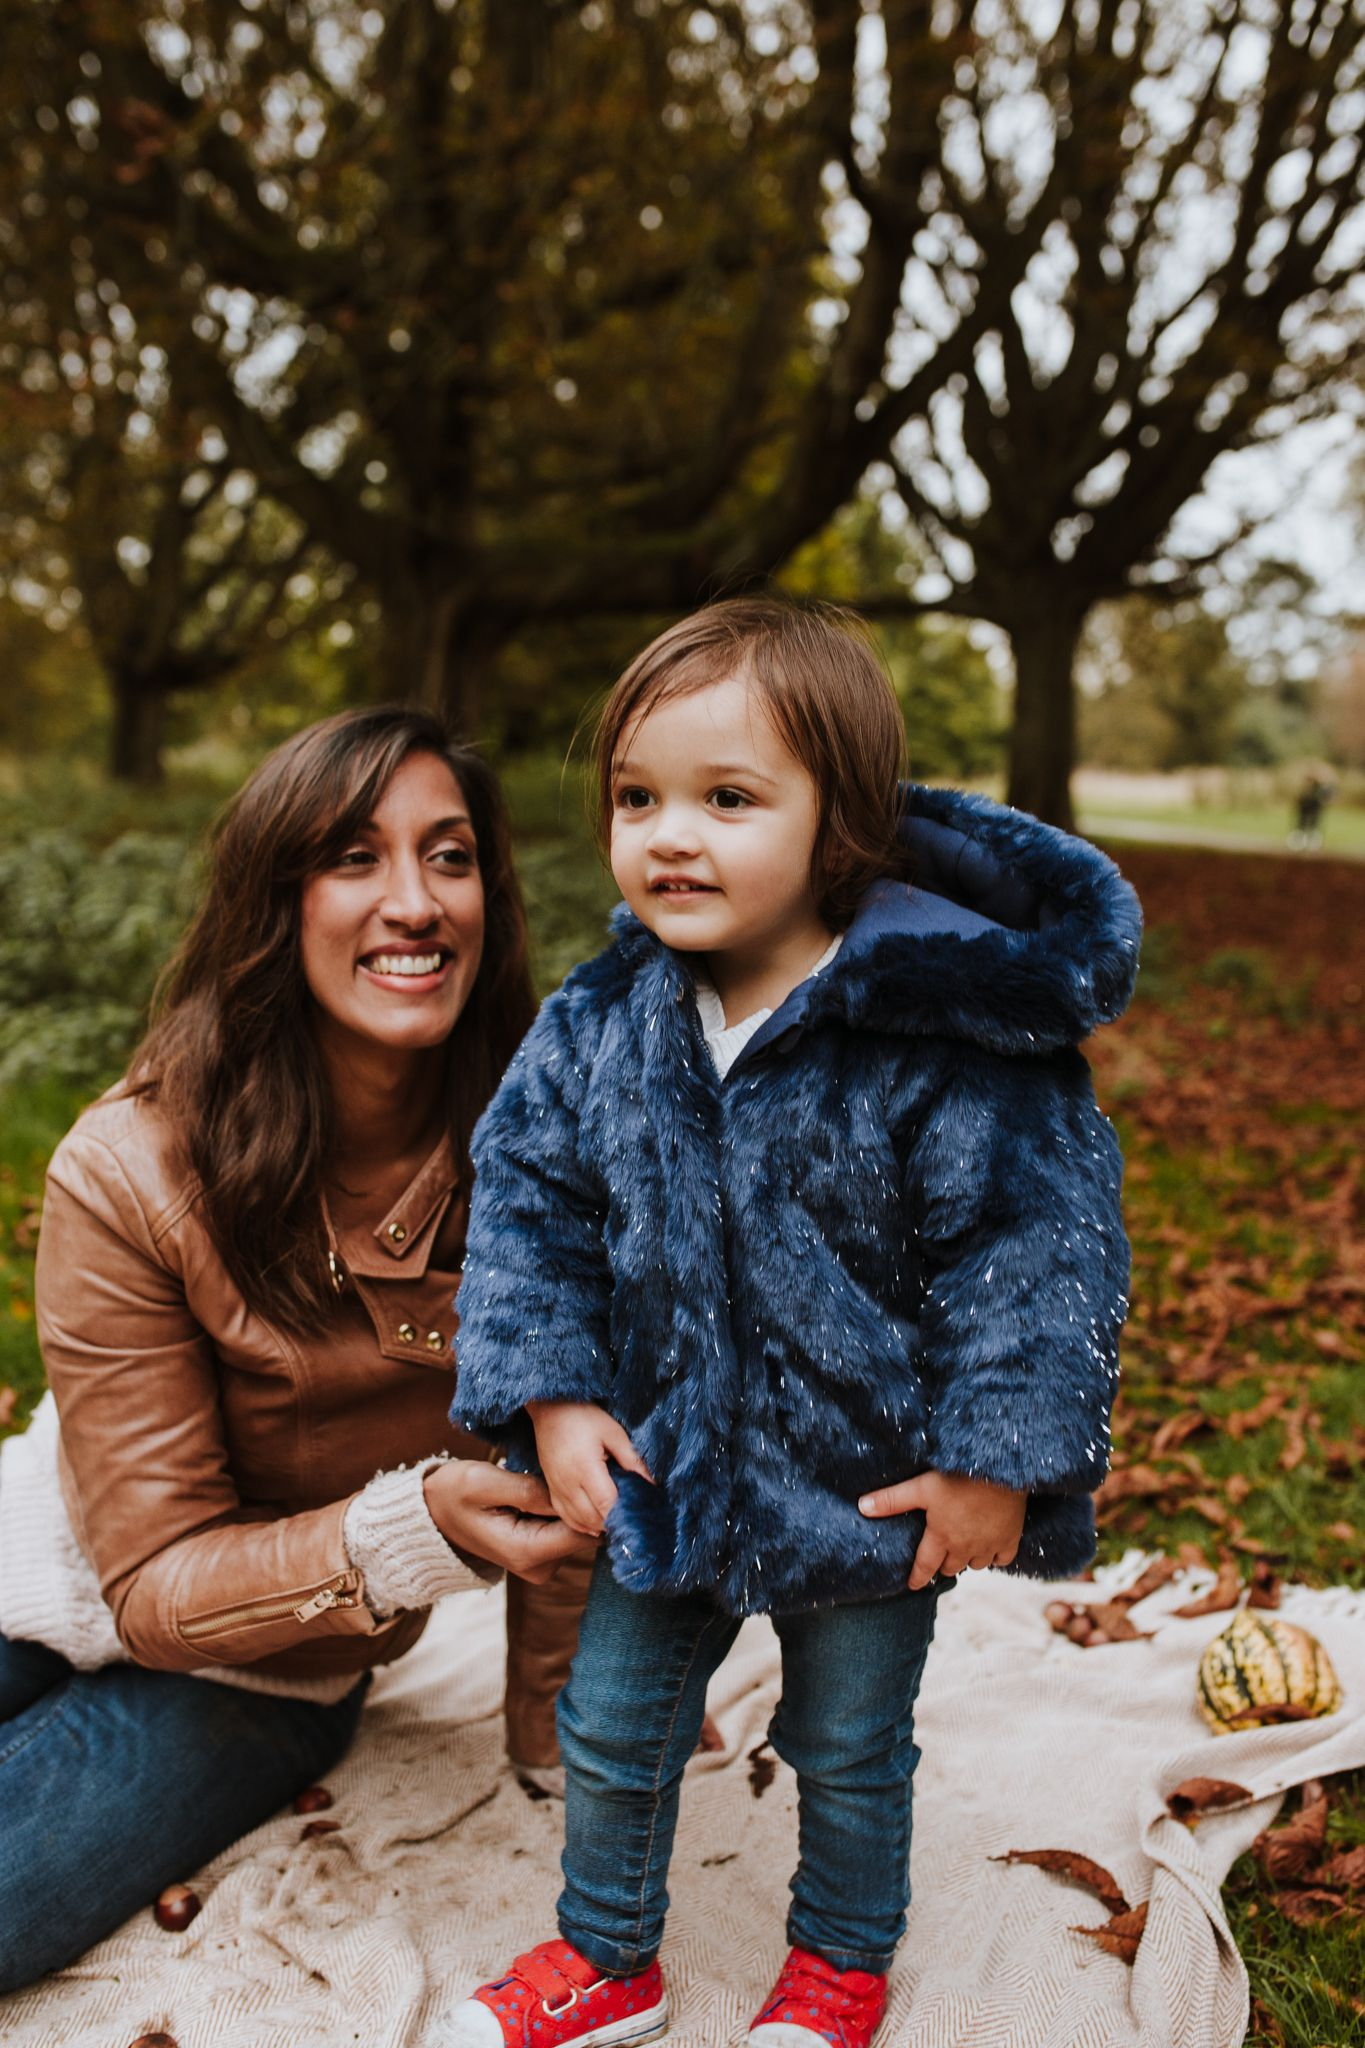 Autumn family mini session in the Cassiobury Park, Watford